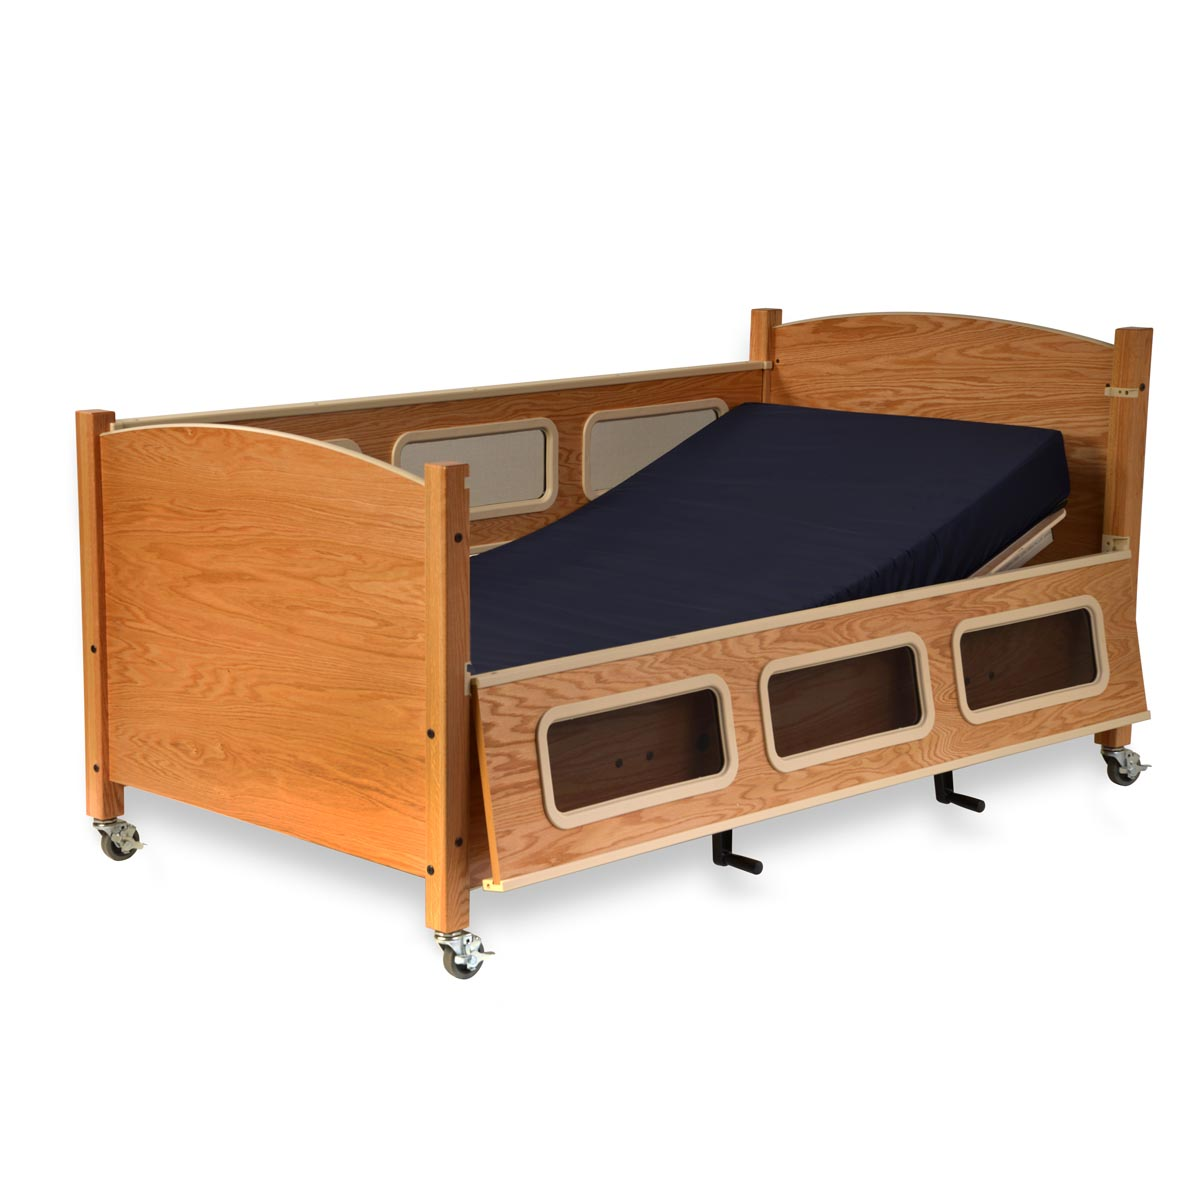 SleepSafe low bed - hi-lo